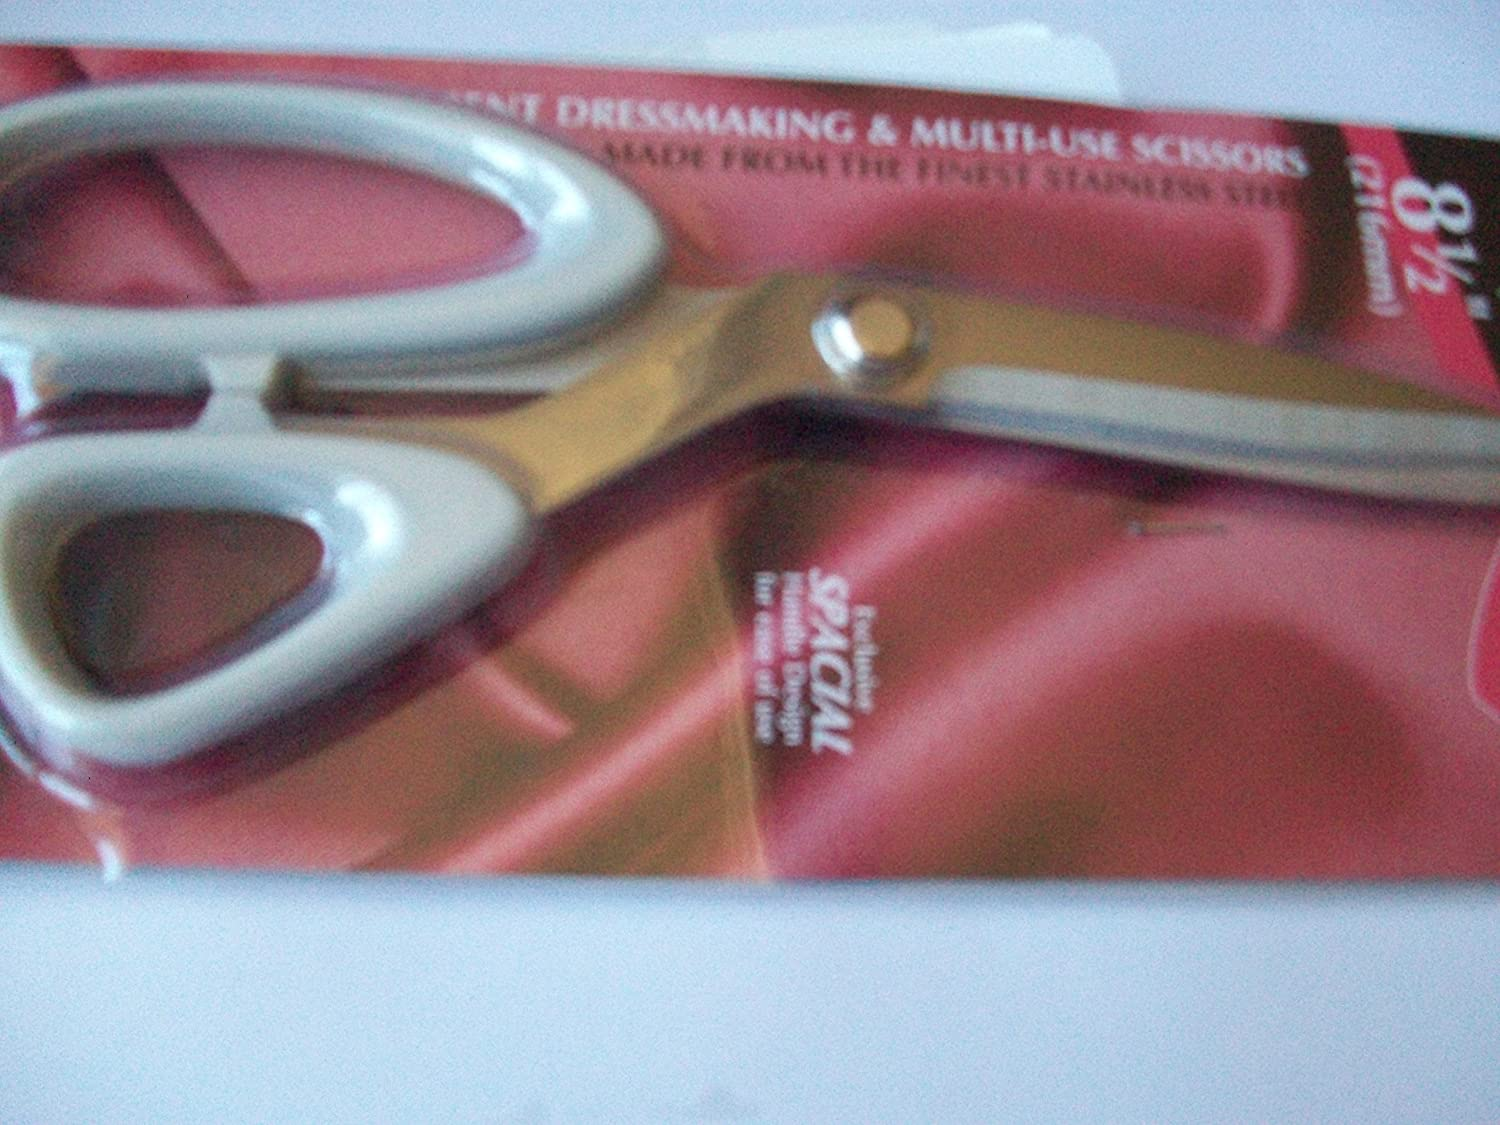 Left-Handed Sidebend Dressmaking Sewing Quilting Janome MultiUse Scissors XIS31L